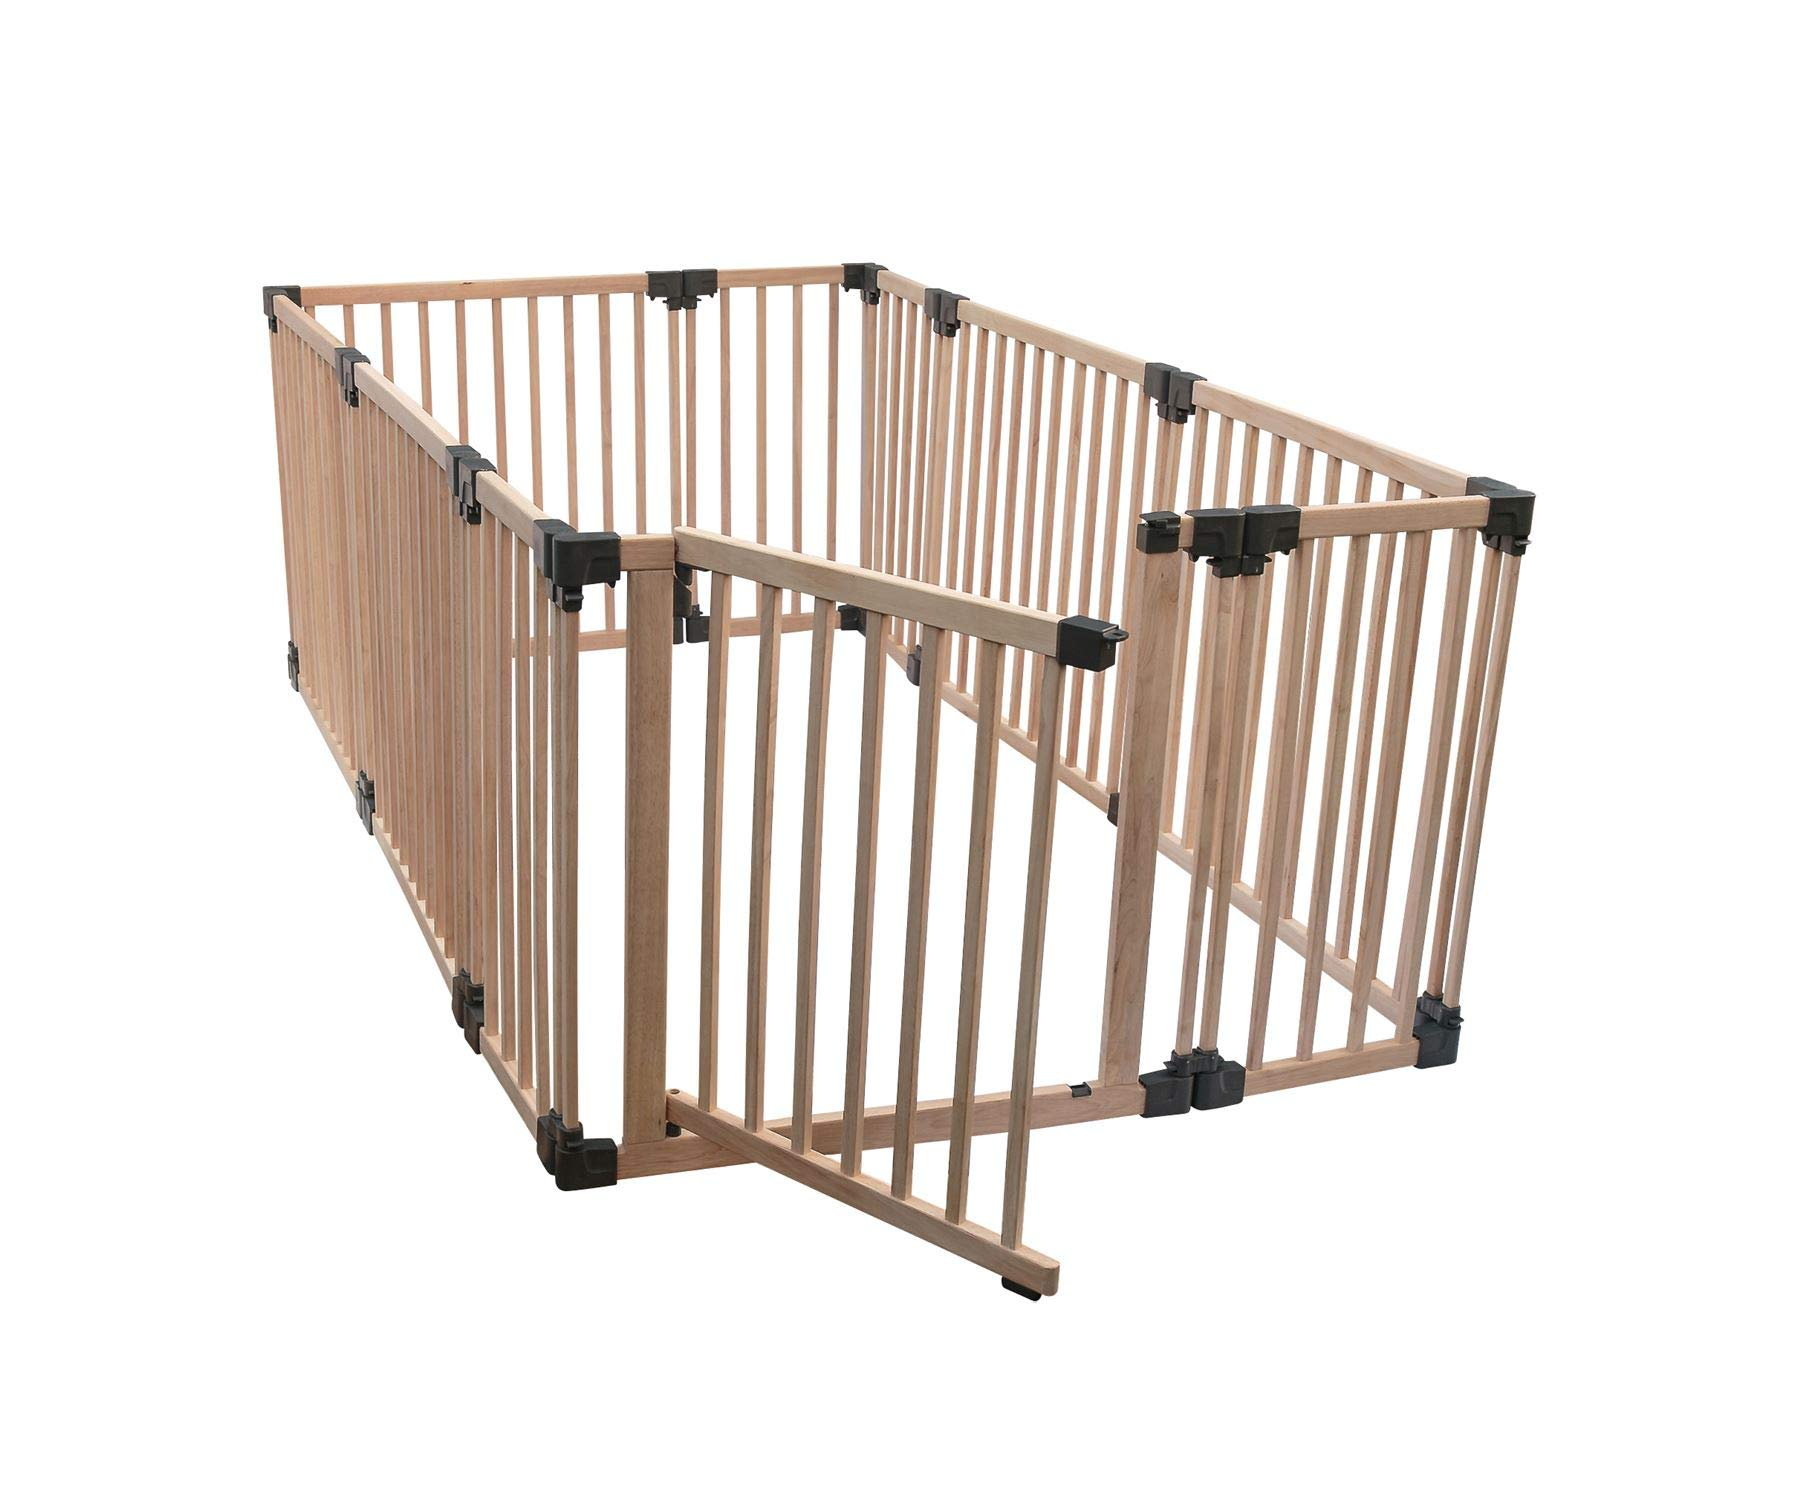 Safetots Play Pen Wooden All Sizes (Large Rectangular) Safetots This configuration is complete with 1x 80cm gate panel, 5x 80cm panels, and 4x 40cm panels. Made from premium grade wood designed to compliment all home interiors Extra Wide Door Section for Easy Access, with simple slide and lift opening mechanism 2